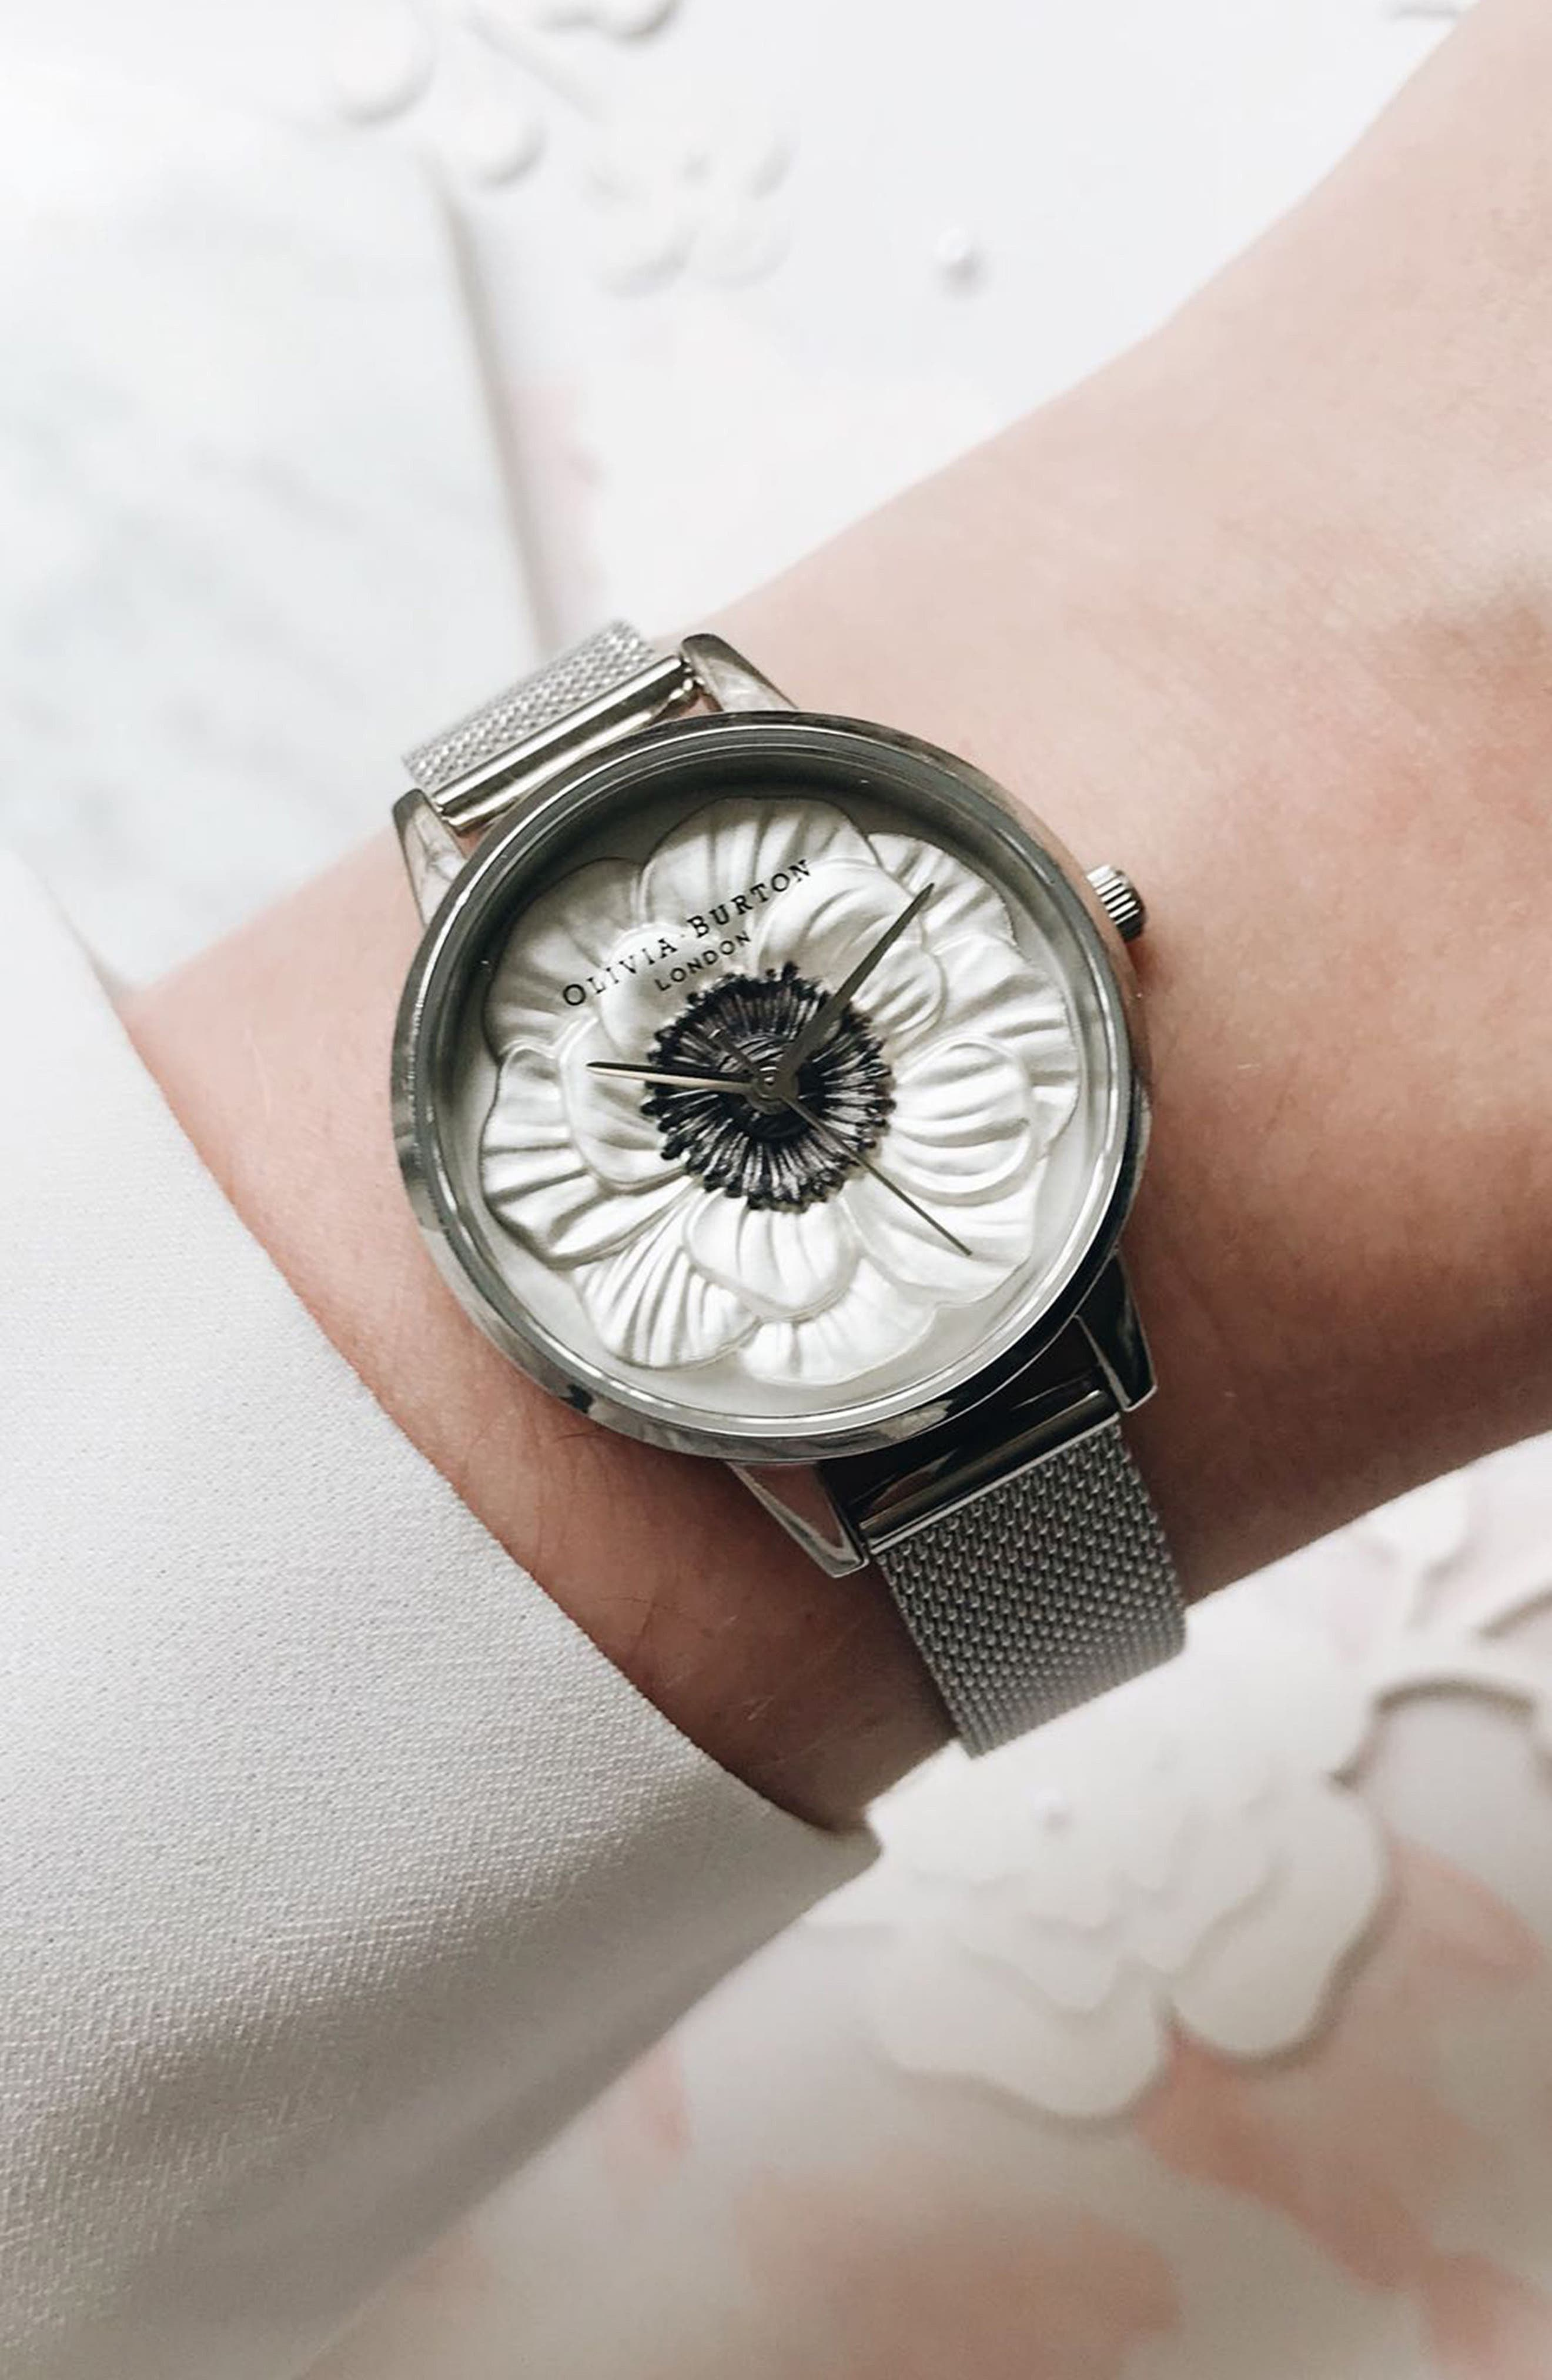 3D Anemone Mesh Strap Watch, 30mm,                             Alternate thumbnail 6, color,                             SILVER/ BLACK/ SILVER